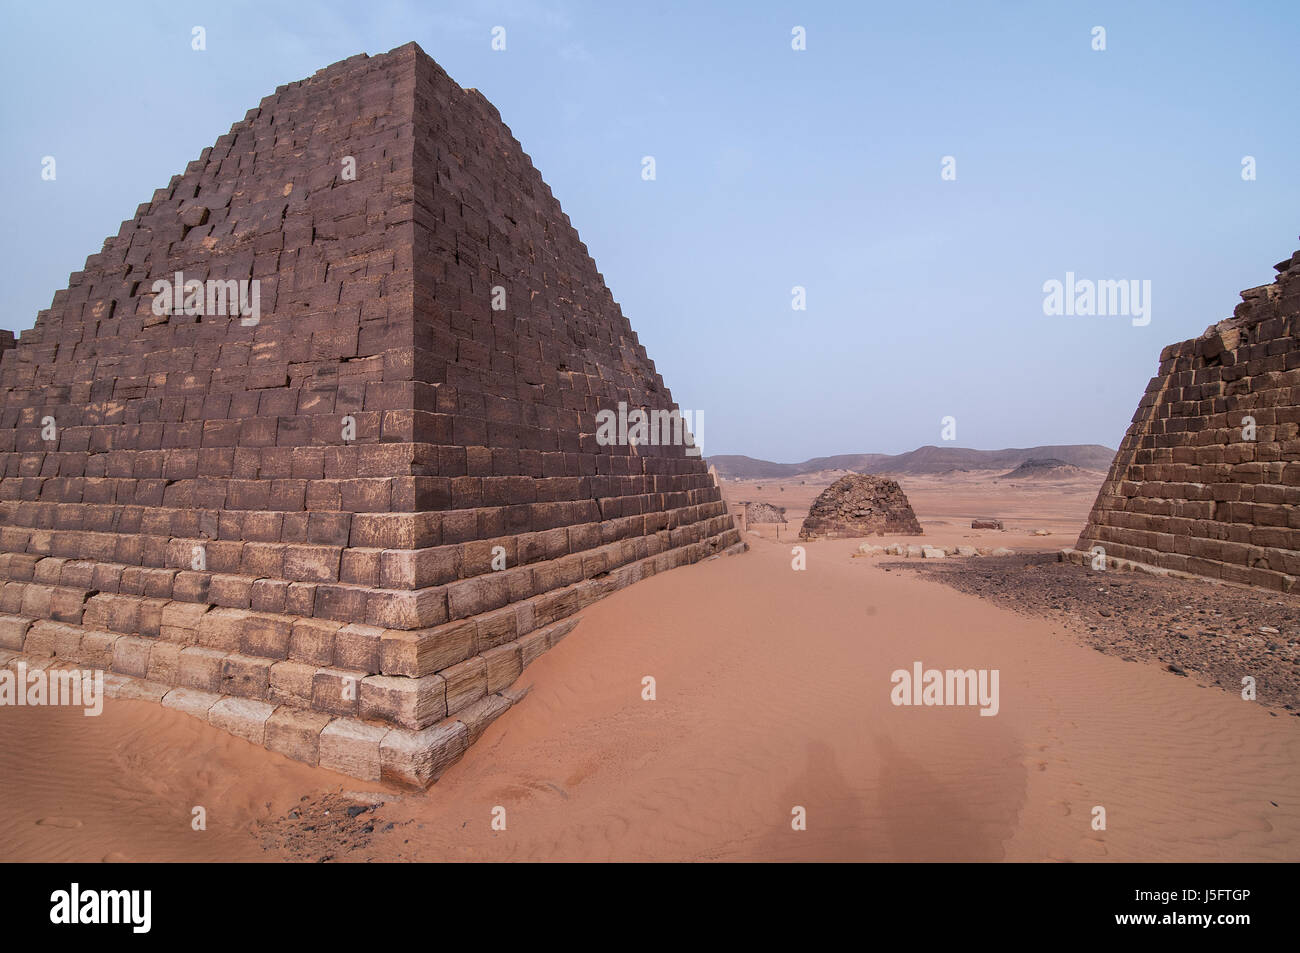 SUDAN, MEROE: Meroë (Meroitic: Medewi or Bedewi) is an ancient city on the east bank of the Nile about 6 km - Stock Image